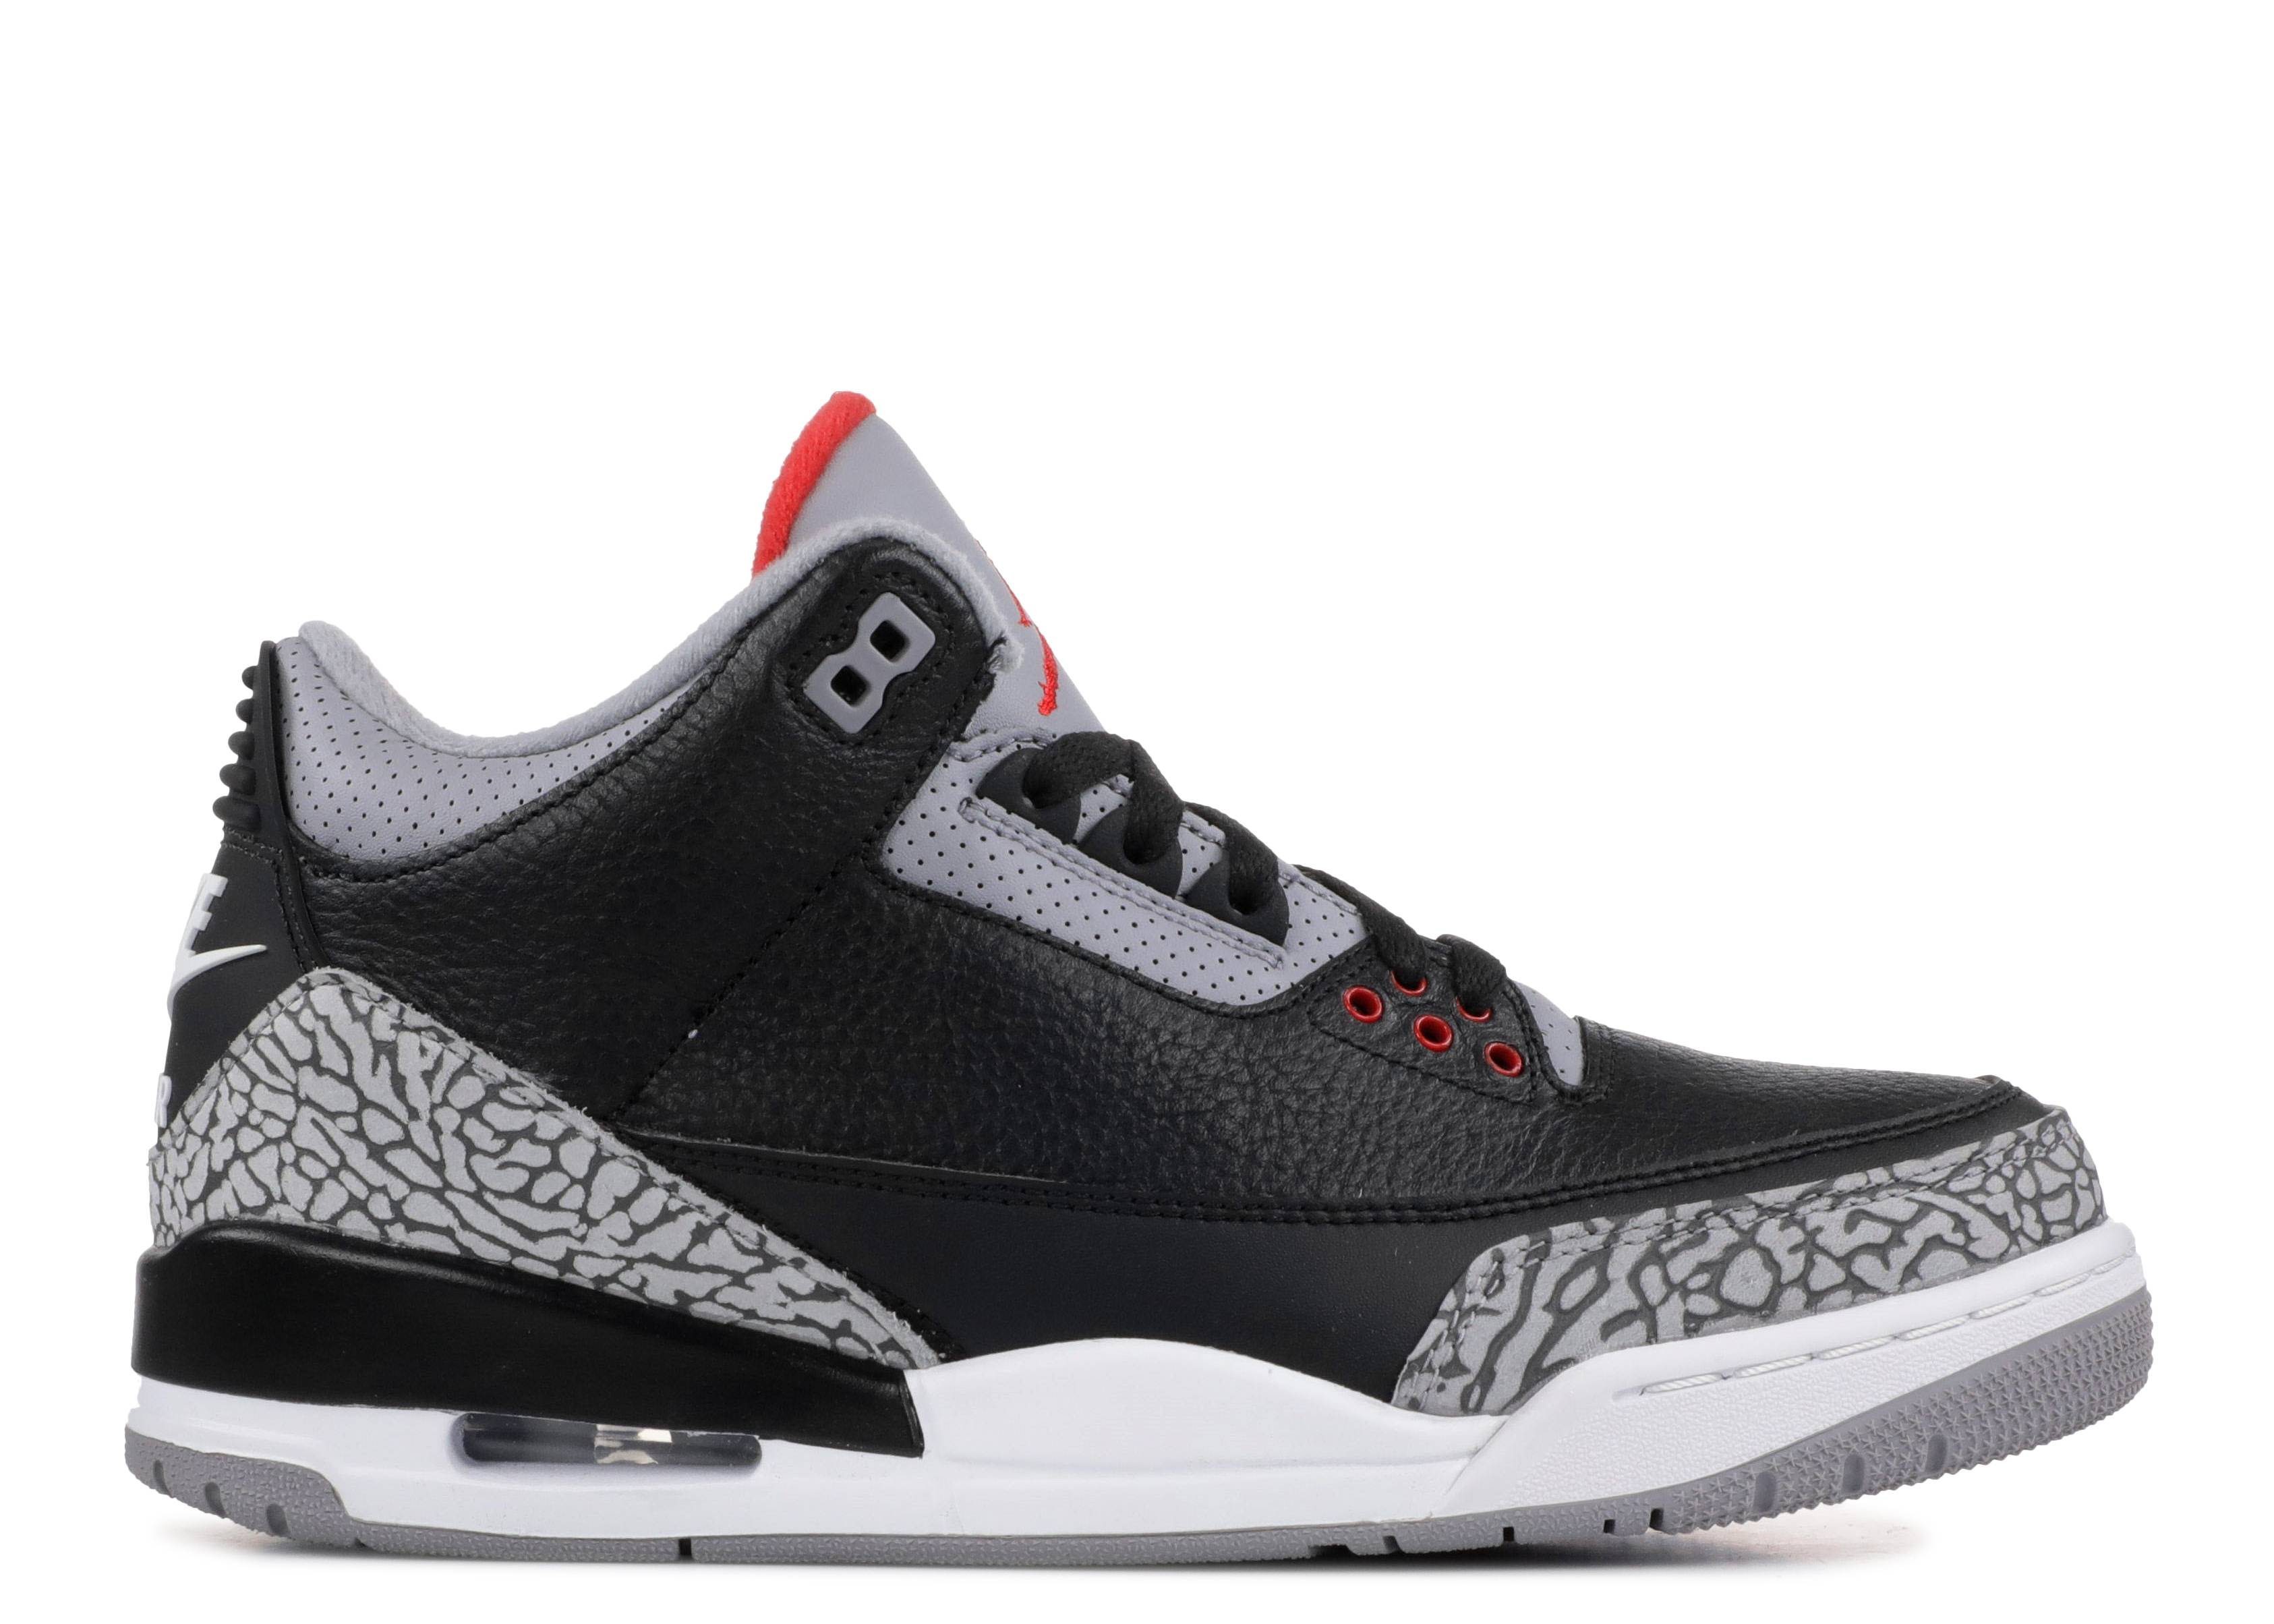 adf2722240cd73 Air Jordan 3 Retro Og